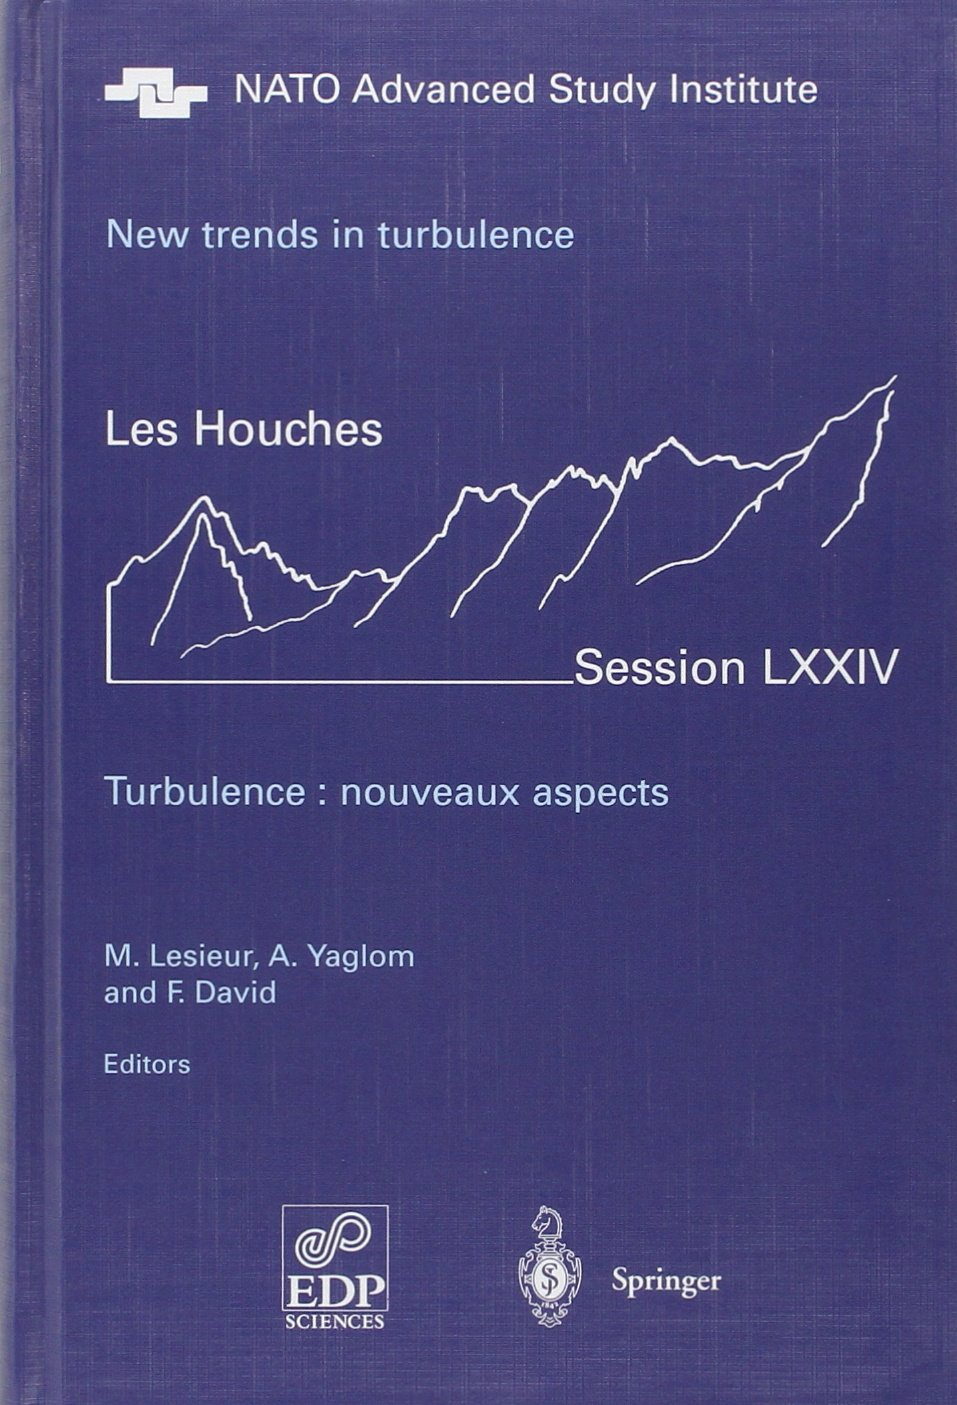 New trends in turbulence =: Turbulence nouveaux aspects : Ecole de physique des Houches--UJF & INPG--Grenoble, a NATO Advanced Study Institute, Les Houches, Session LXXIV, 31 July--1 September 2000 pdf